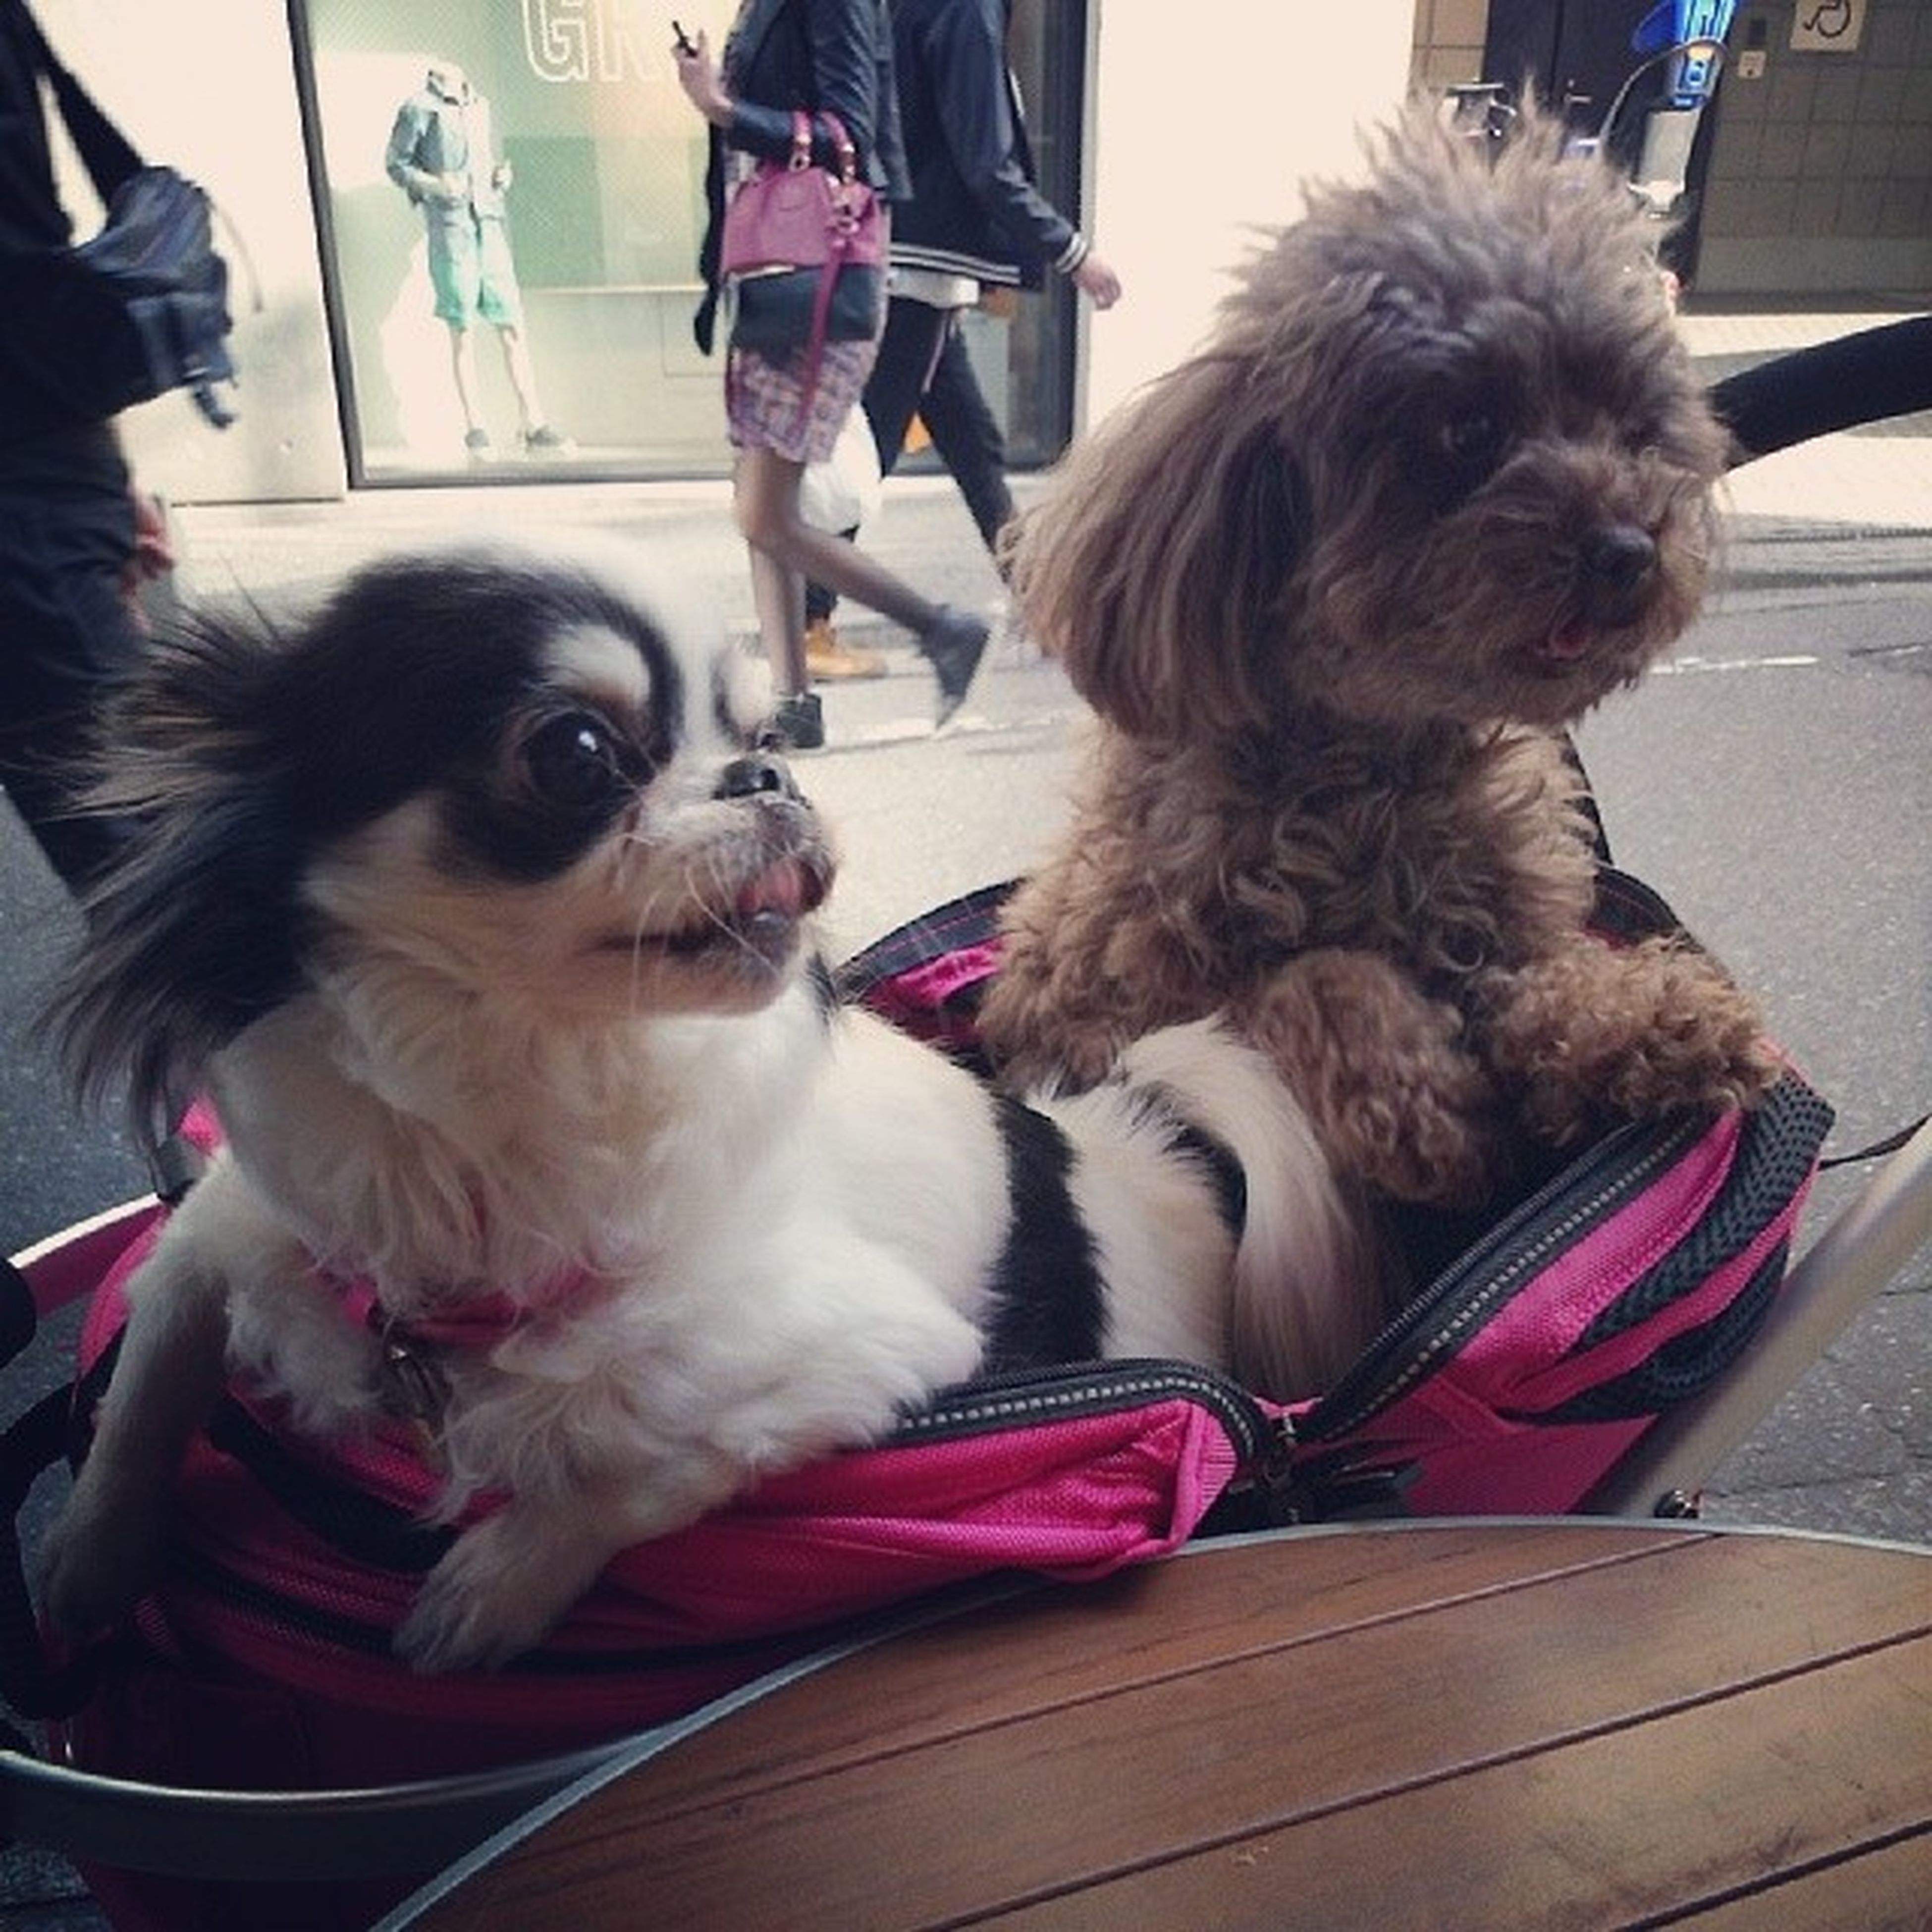 pets, domestic animals, dog, animal themes, one animal, mammal, sitting, transportation, pet owner, indoors, two animals, car, mode of transport, pet leash, land vehicle, incidental people, pampered pets, pet collar